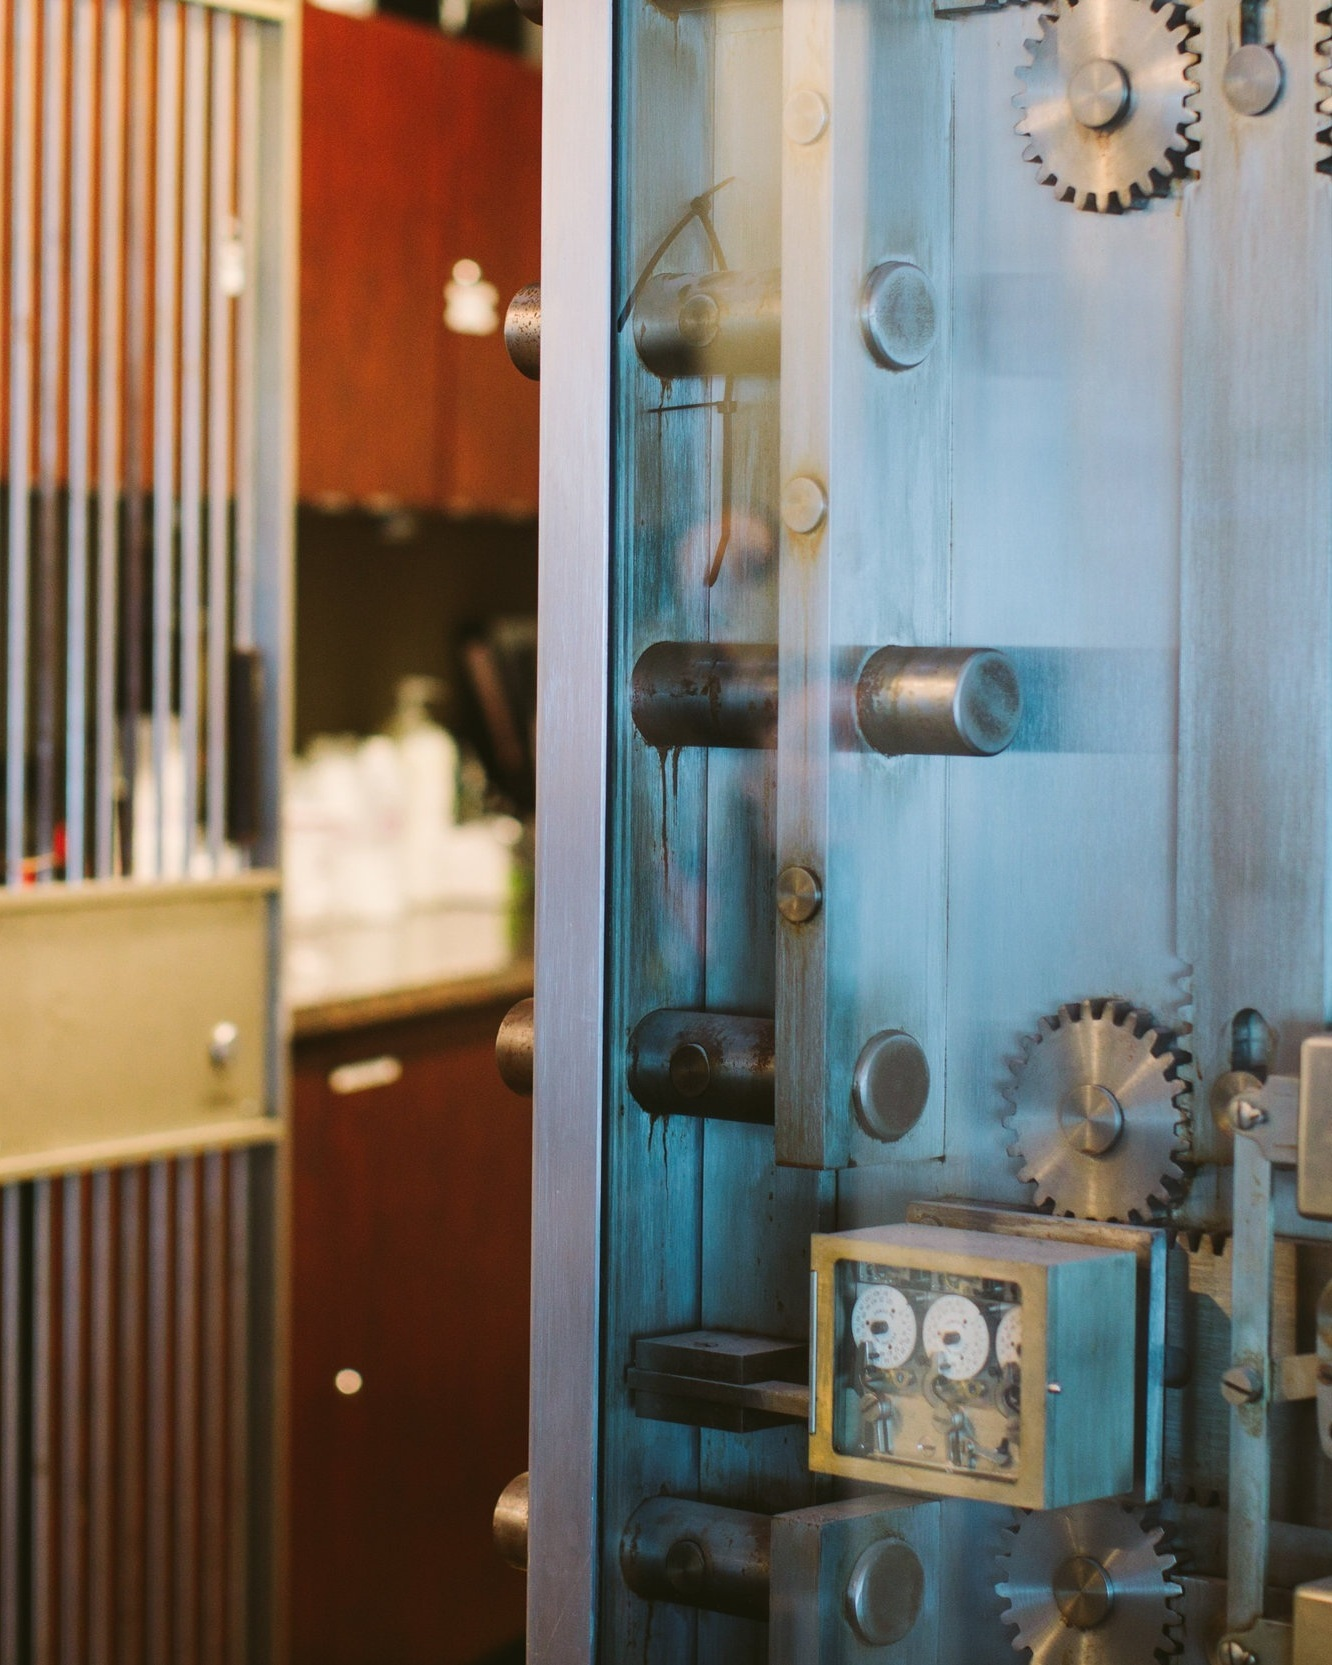 A CREATIVE SPACE - OUR BUILDING WAS ORIGINALLY A BANK THAT HAS SINCE BEEN CONVERTED INTO A SALON. THE 1970'S BANK VAULT IS NOW USED AS OUR COLOR VAULT AND MIXING STATION.